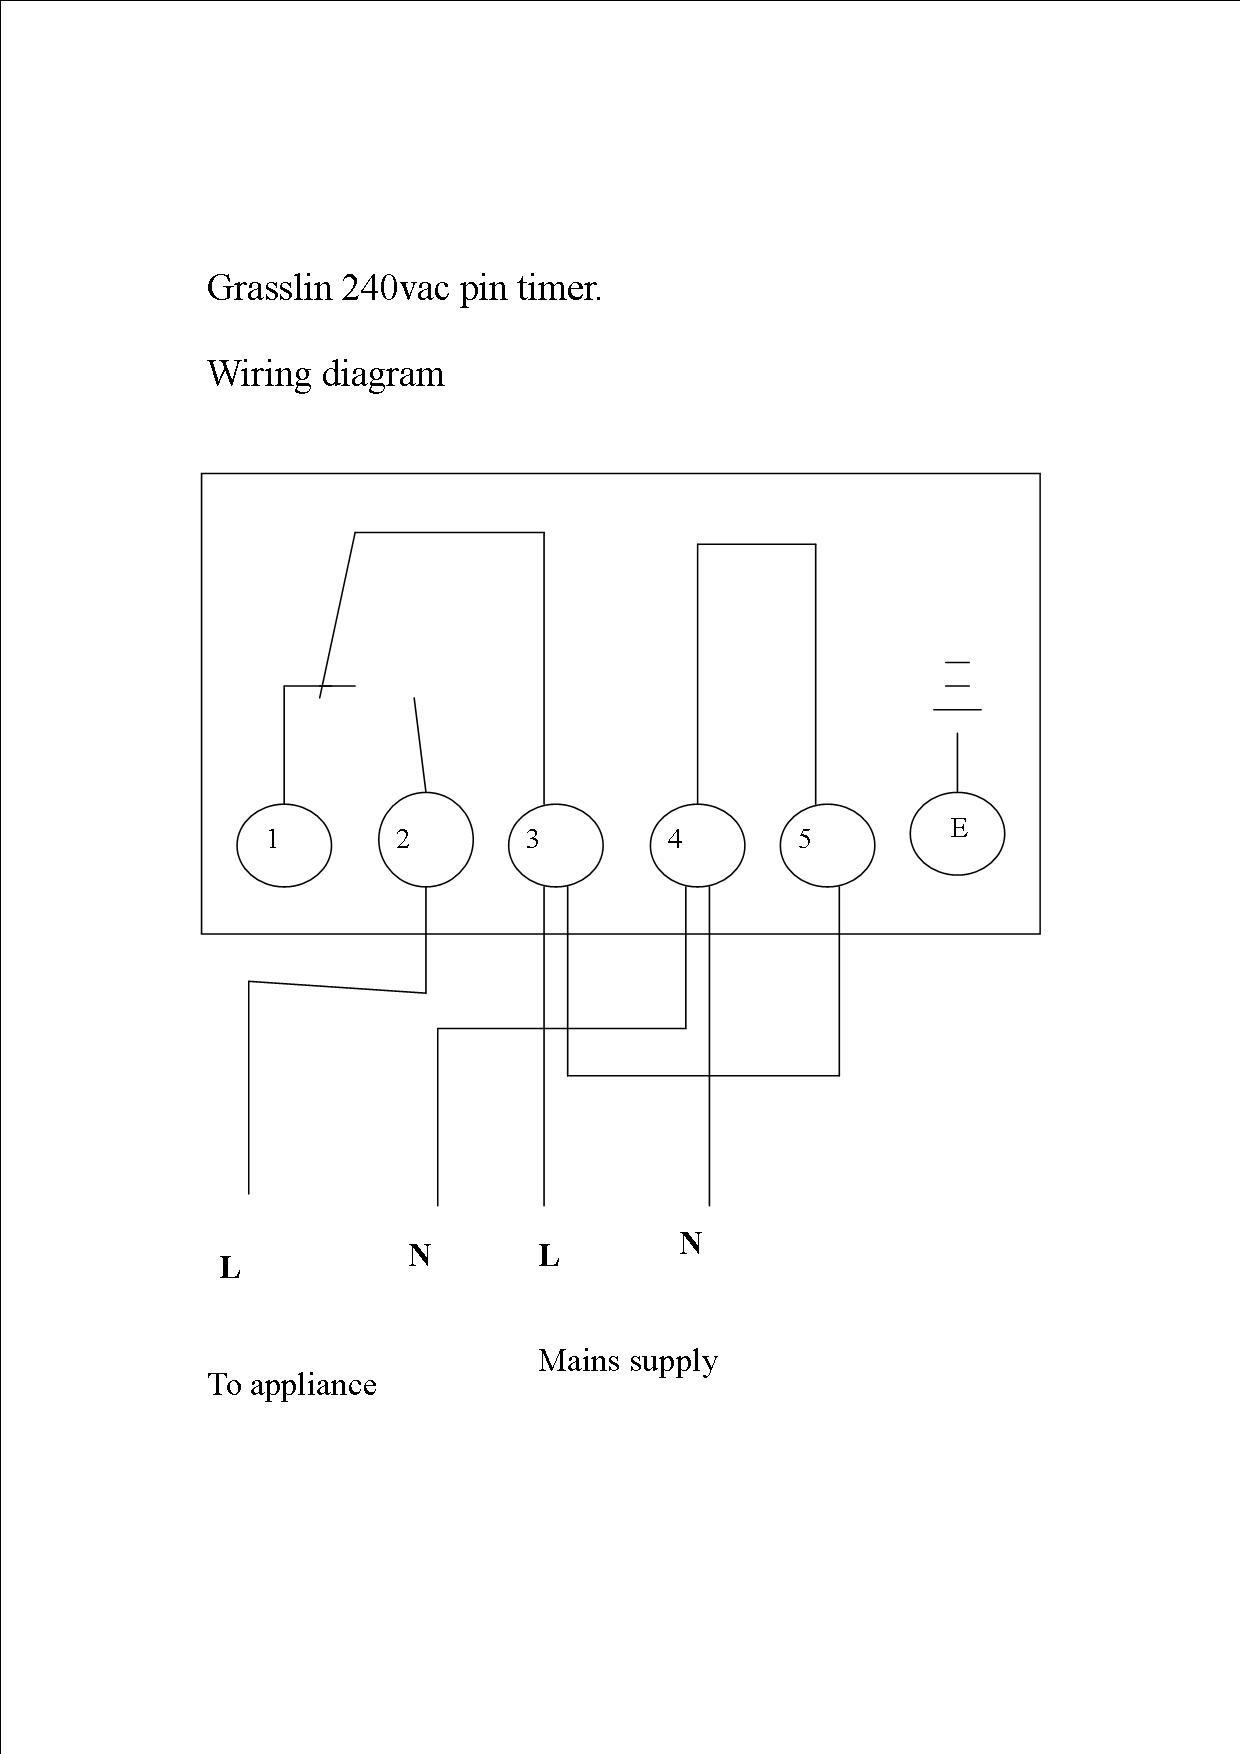 eaton lighting contactor wiring diagram diagram eaton lighting contactor wiring diagram nilza net